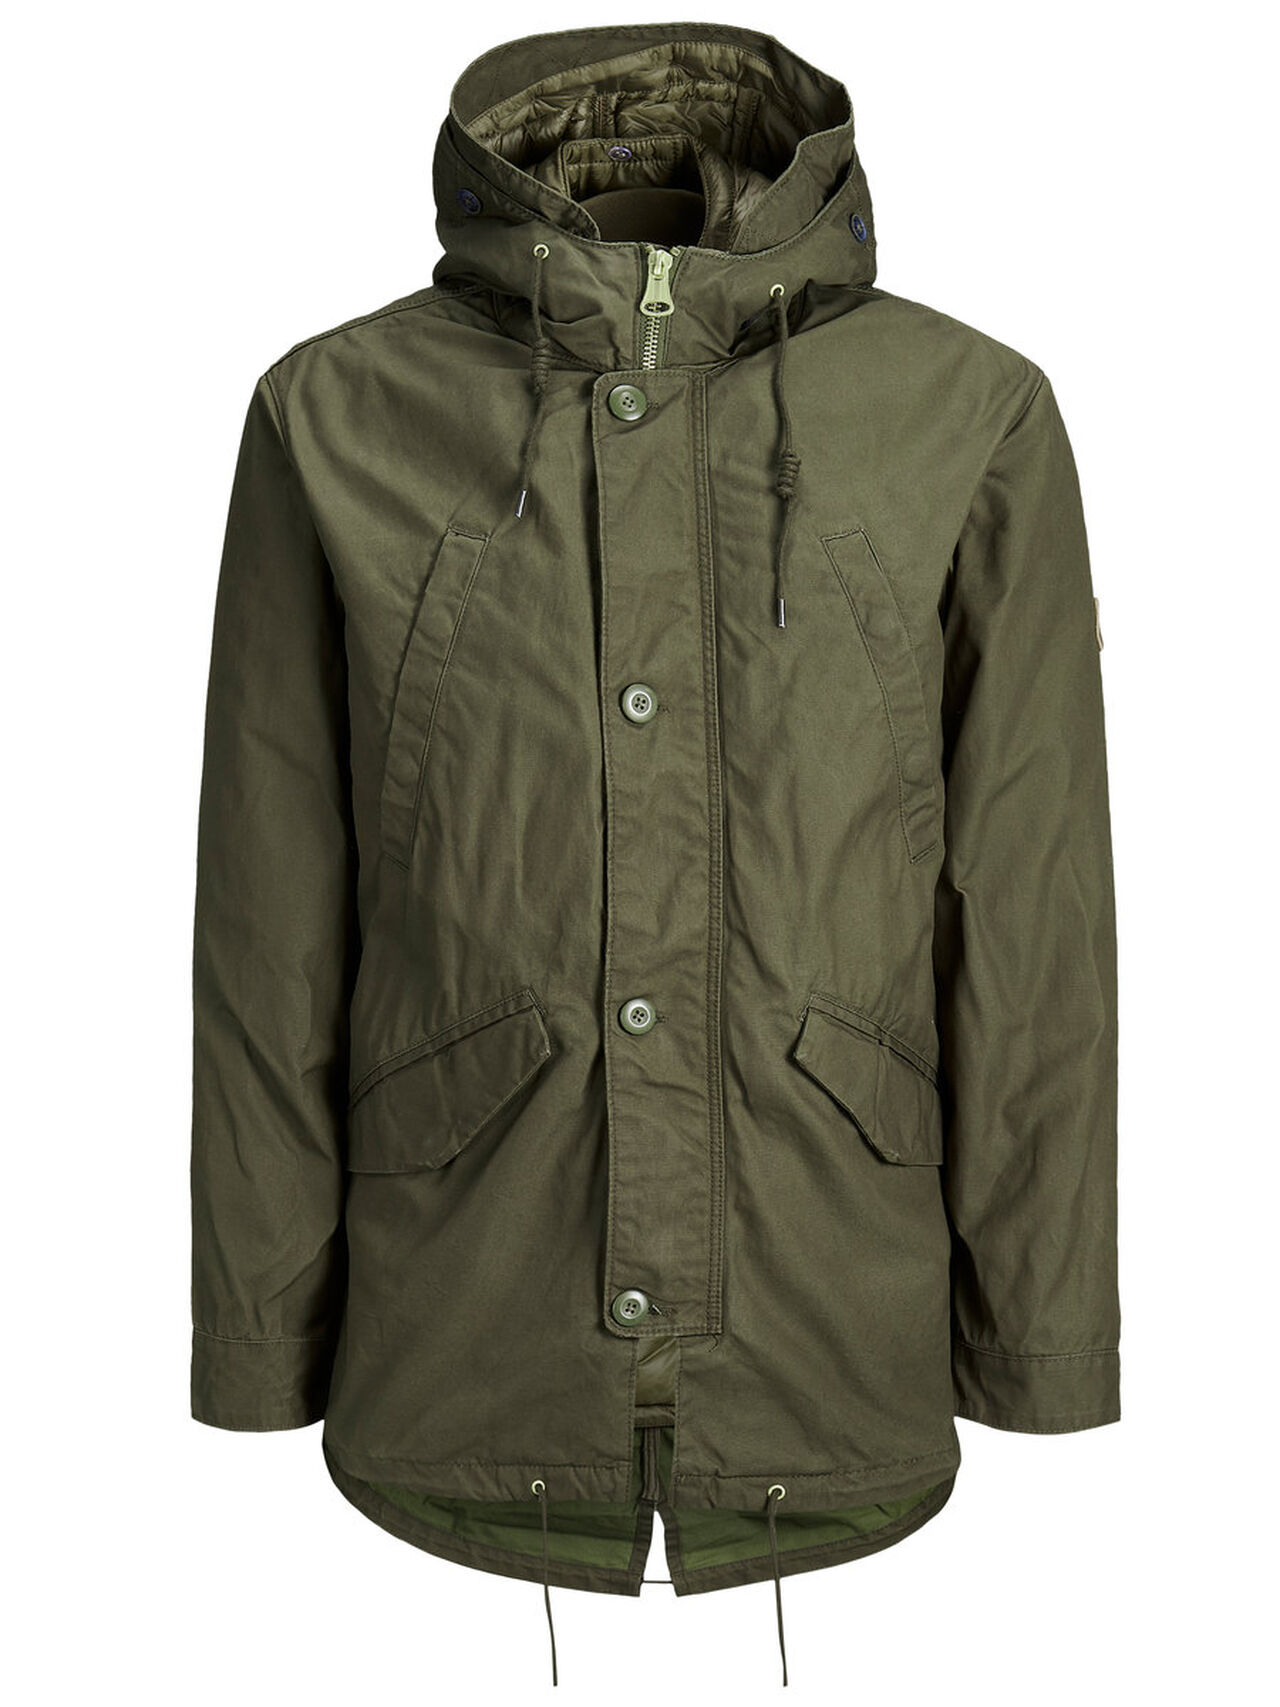 3 In 1 Parka Coat